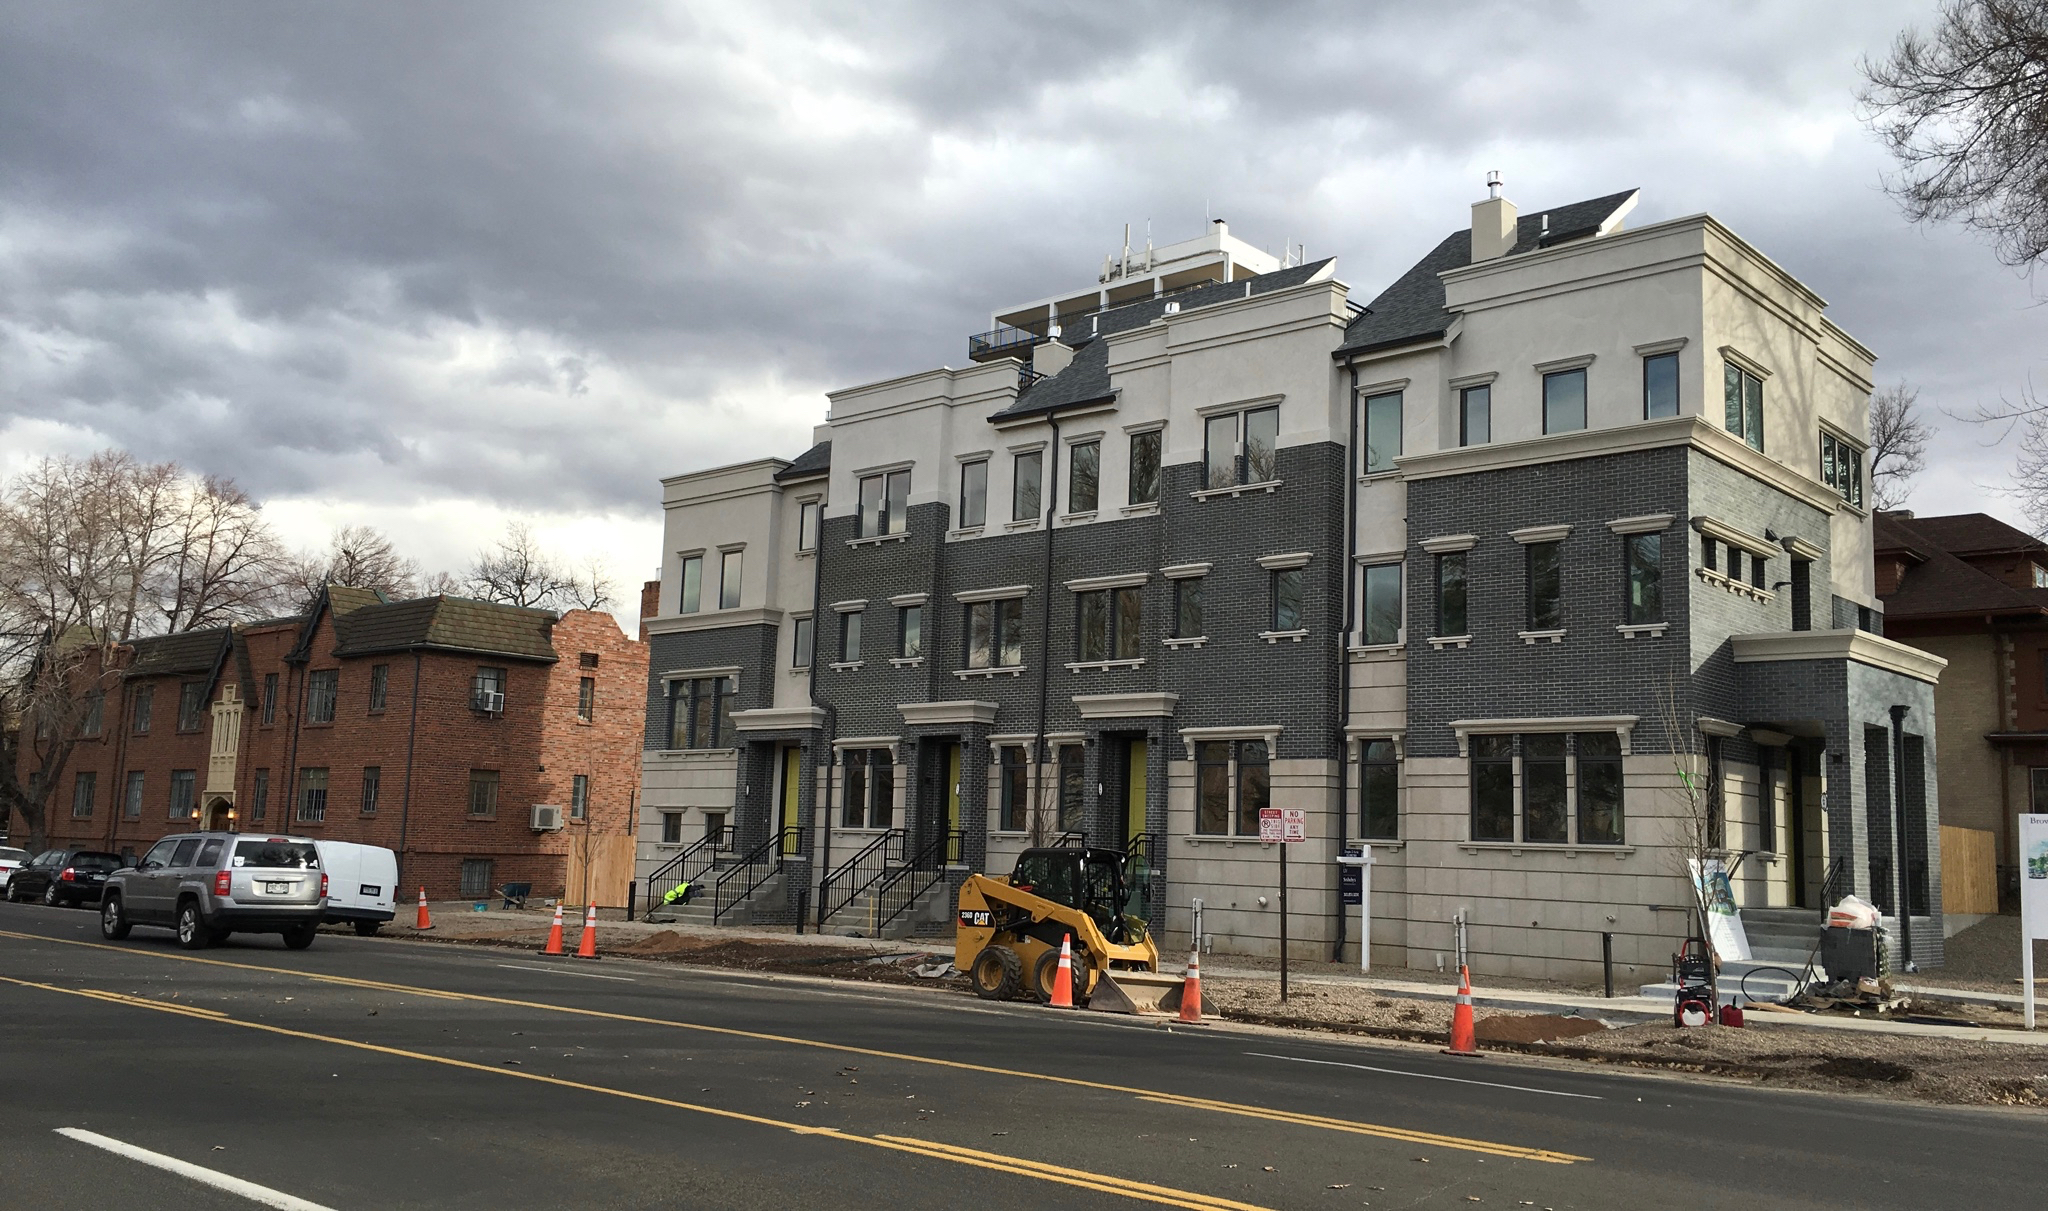 Streetscape with new row houses